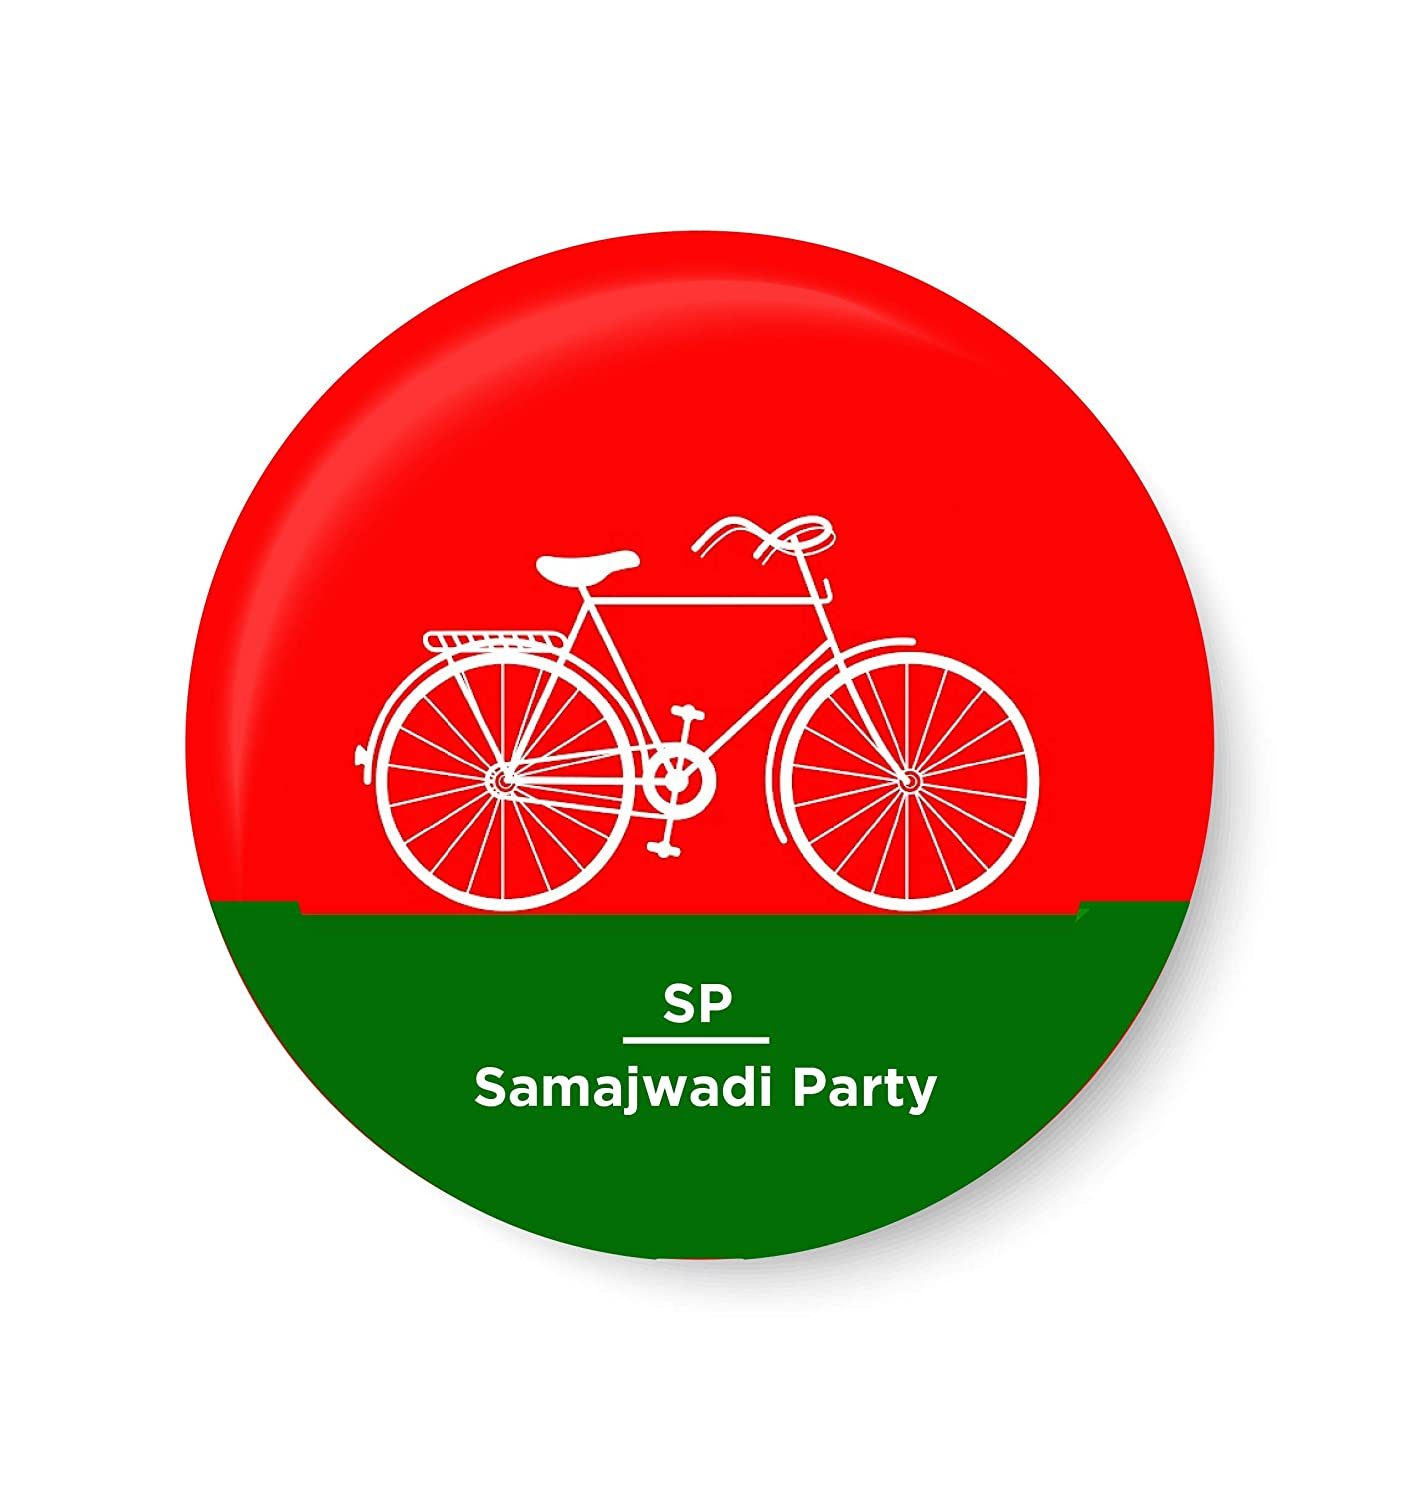 PEACOCKRIDE Vote for Your Party I Samajwadi Party Symbols Pin Badge (Metal,  Multicolour,37mm): Amazon.in: Home & Kitchen